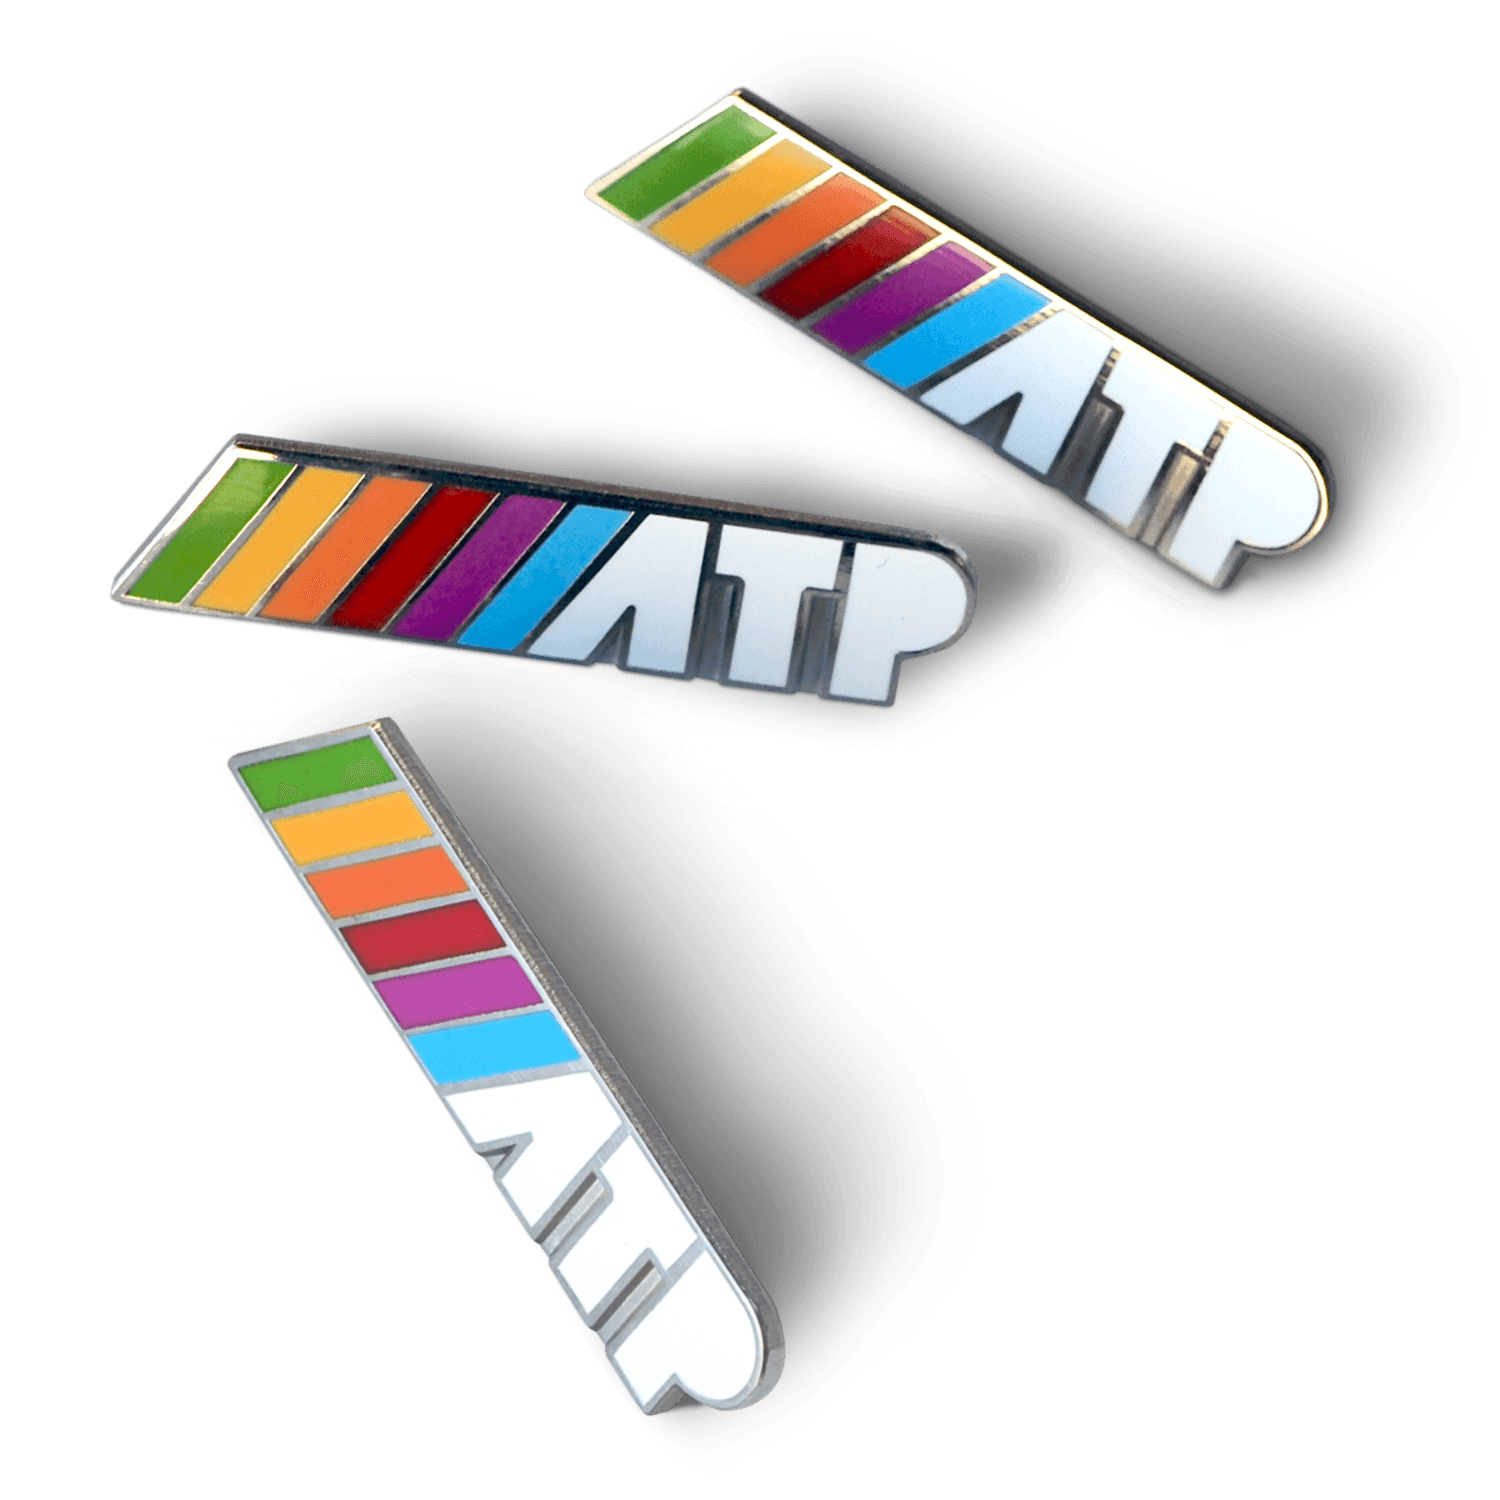 Enamel Pins - High-quality metal and enamel pins, custom-made for ATP, showing off the glorious rainbow logo.These are in stock now in limited quantities. Once they're gone, they're gone… at least for now.As a bonus, now all ATP pins include a locking back, so your Tom Bihn bag won't have any fallen soldiers.Buy now!